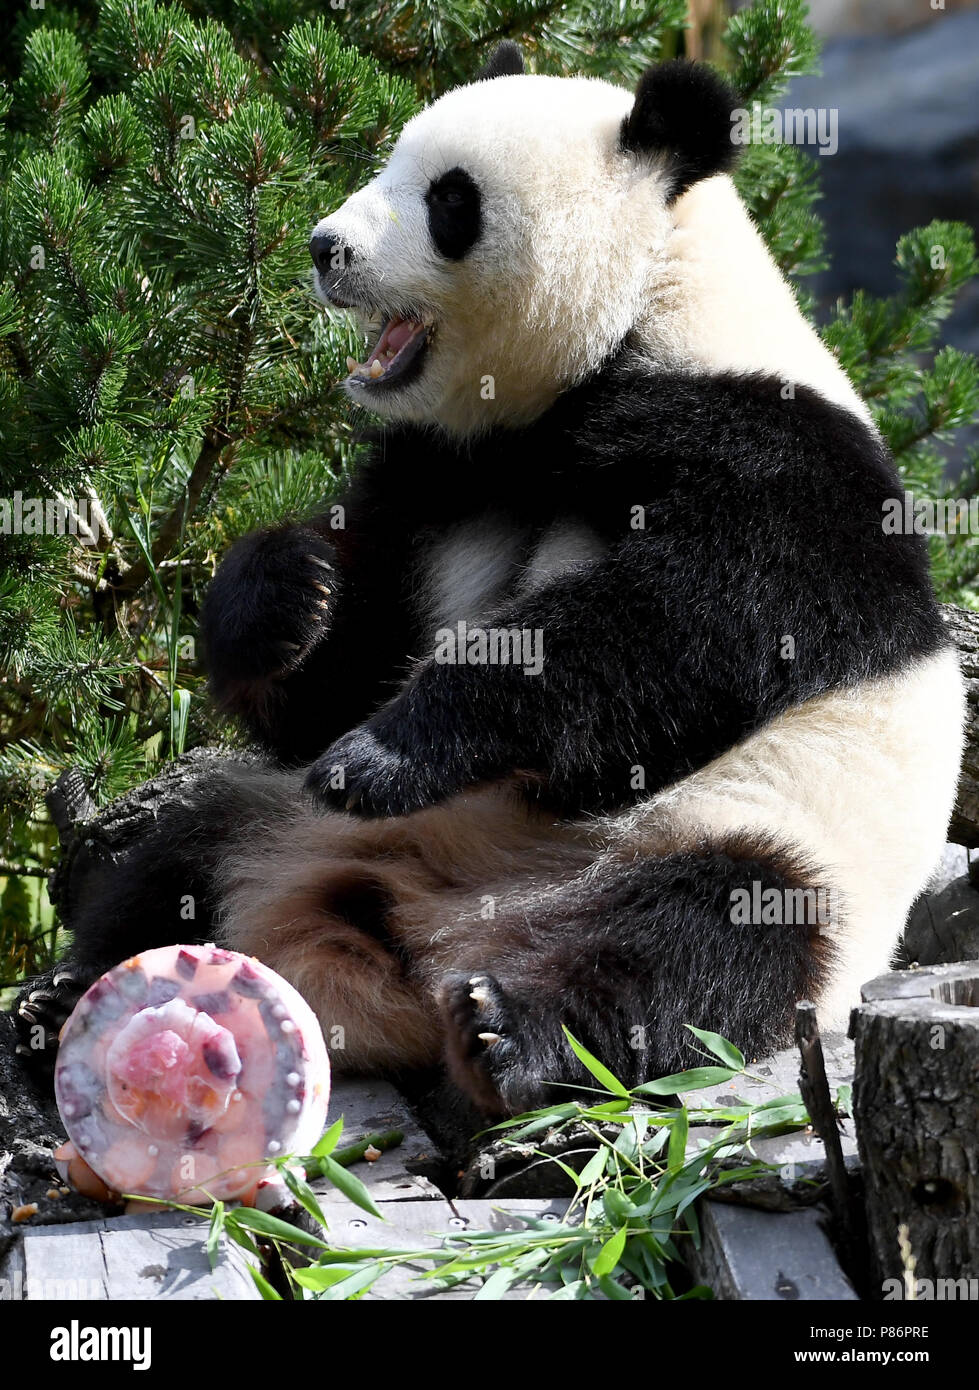 Berlin, Germany. 10th July, 2018. Panda female Meng Meng eats her birthday cake at her enclosure at the Berlin Zoological Garden. The animal keepers served a sugar-free birthday cake with delicacies like bamboo, apples, carrots and ice on the occasion of her fifth birthday. Together with the male panda Jiao Qing the panda female Meng Meng from a reserve in Chengdu lives at the Berlin zoo as a Chinese 'loan'. Credit: Britta Pedersen/dpa-Zentralbild/dpa/Alamy Live News - Stock Image